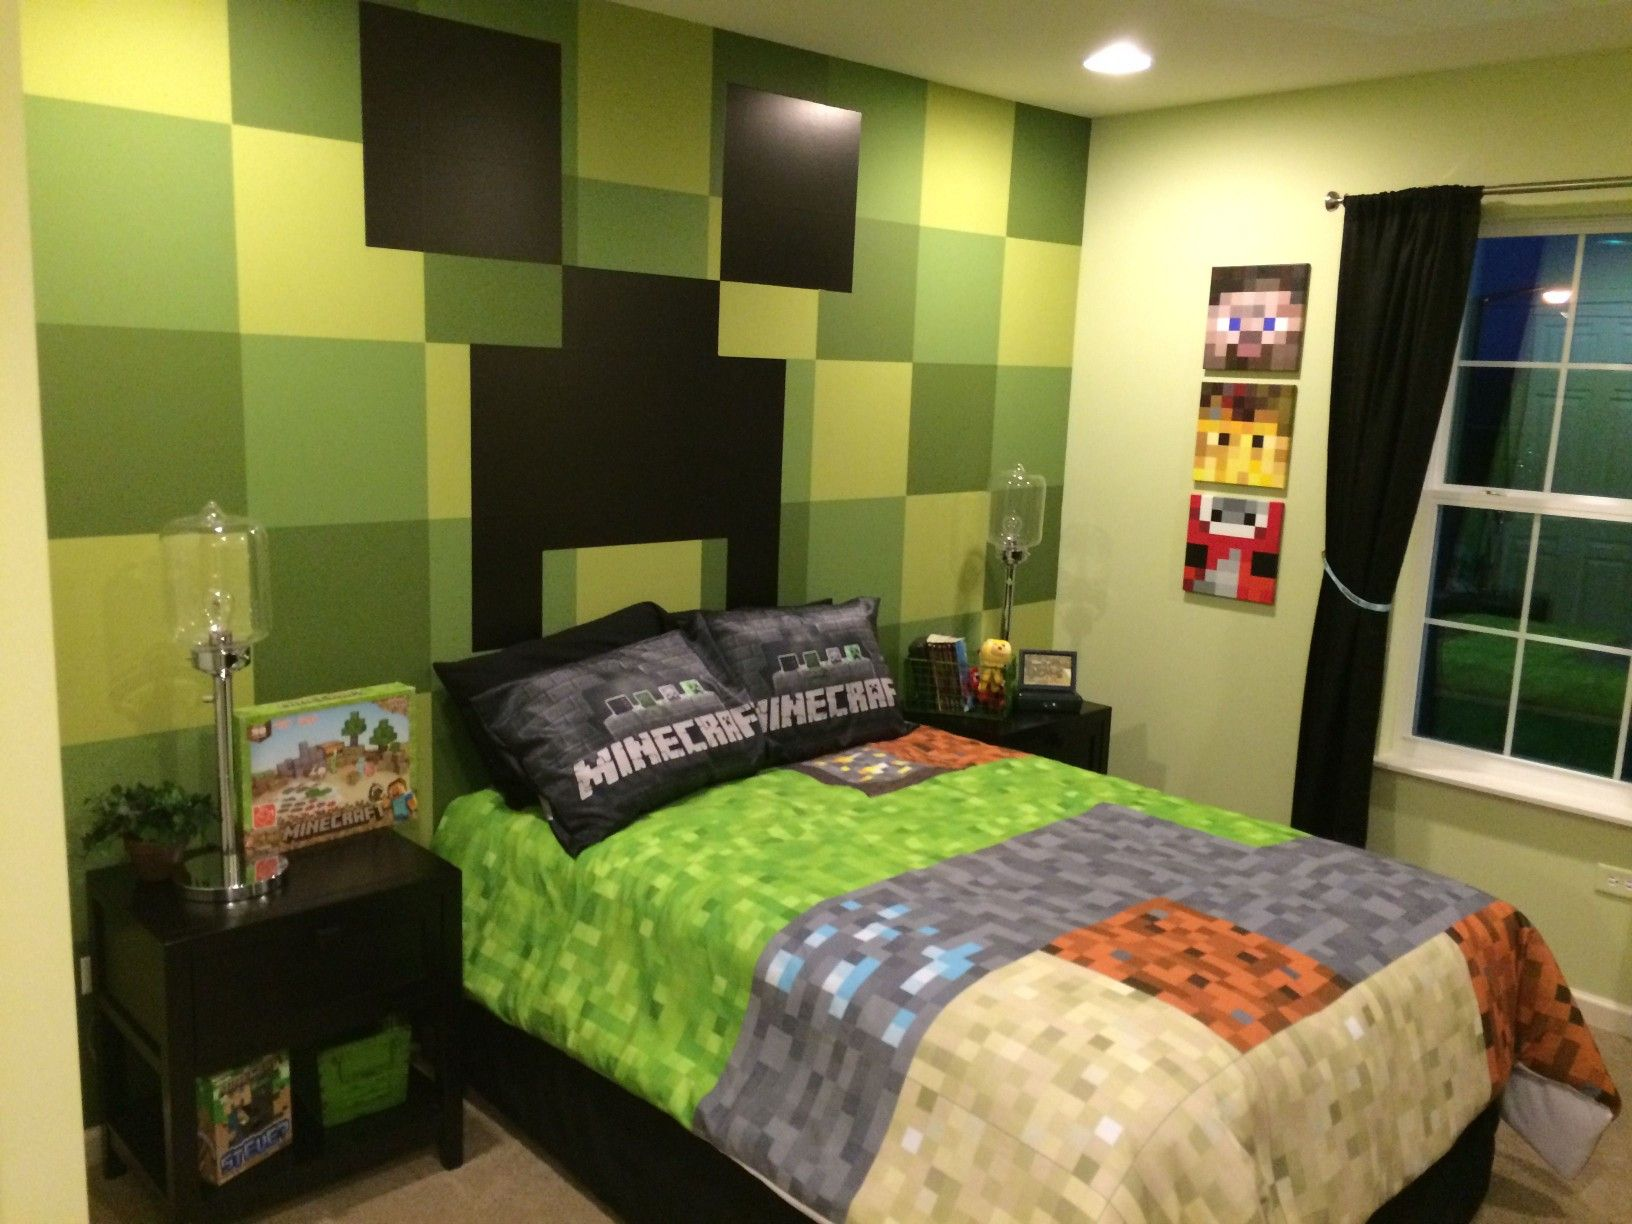 Minecraft Bedroom | Boy bedroom design, Bedroom design